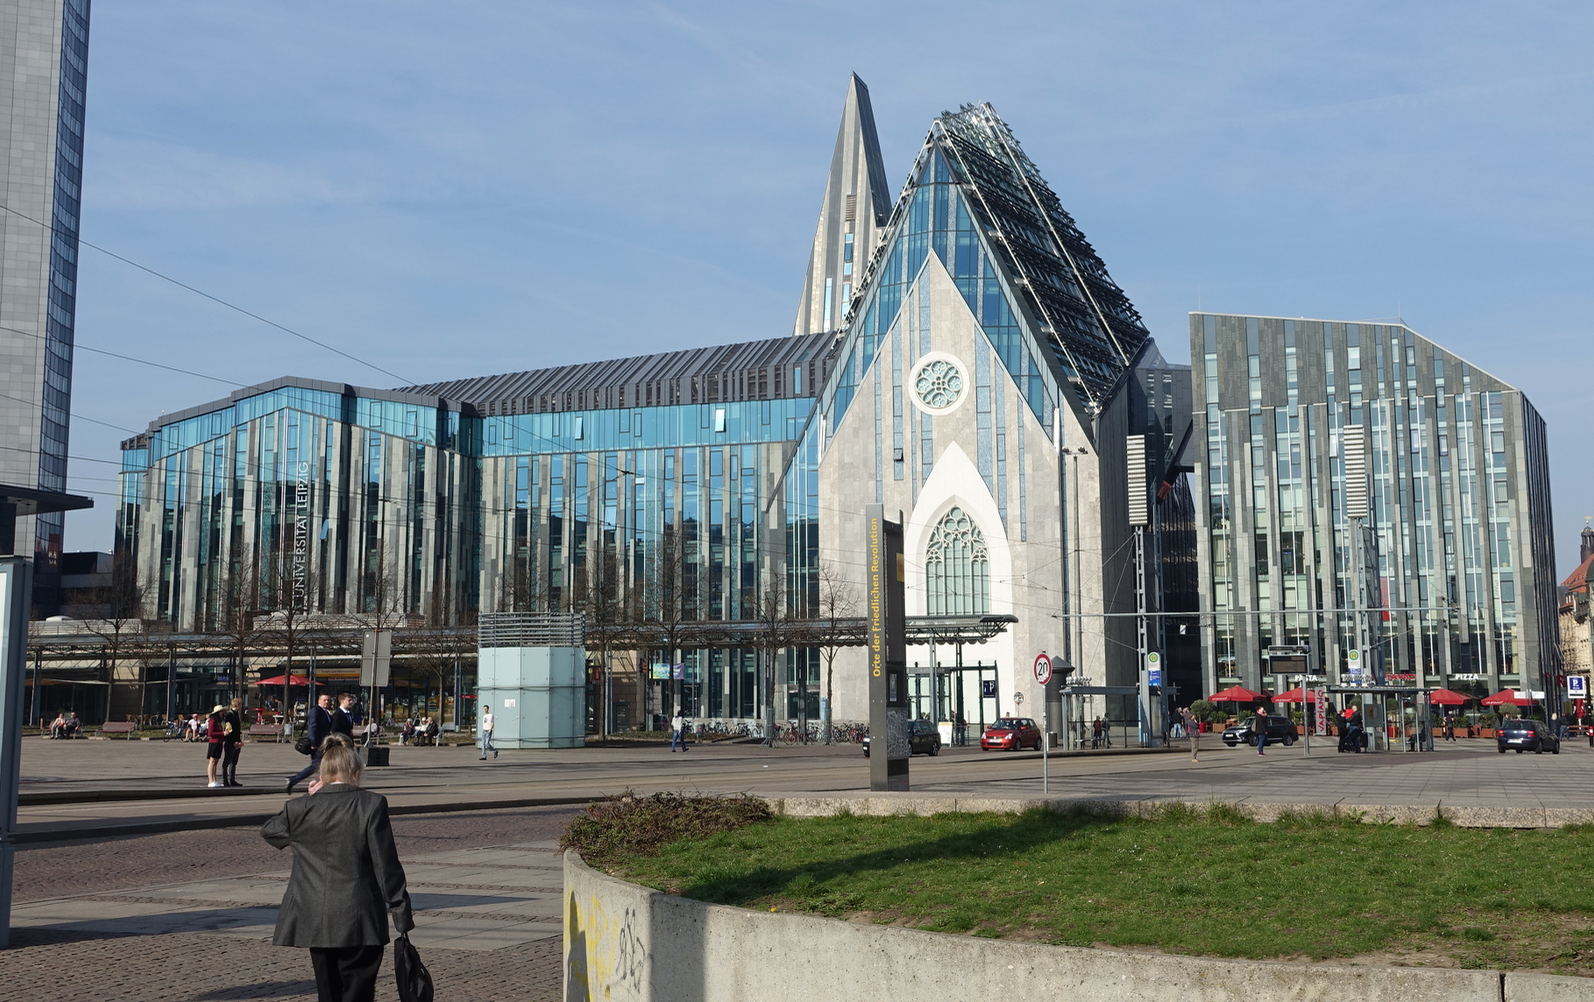 The  Paulinum  at the  University of Leipzig  stands where the  Paulinerkirche  church stood until 1968, when it was unnecessarily torn down by the communist regime of  East Germany .